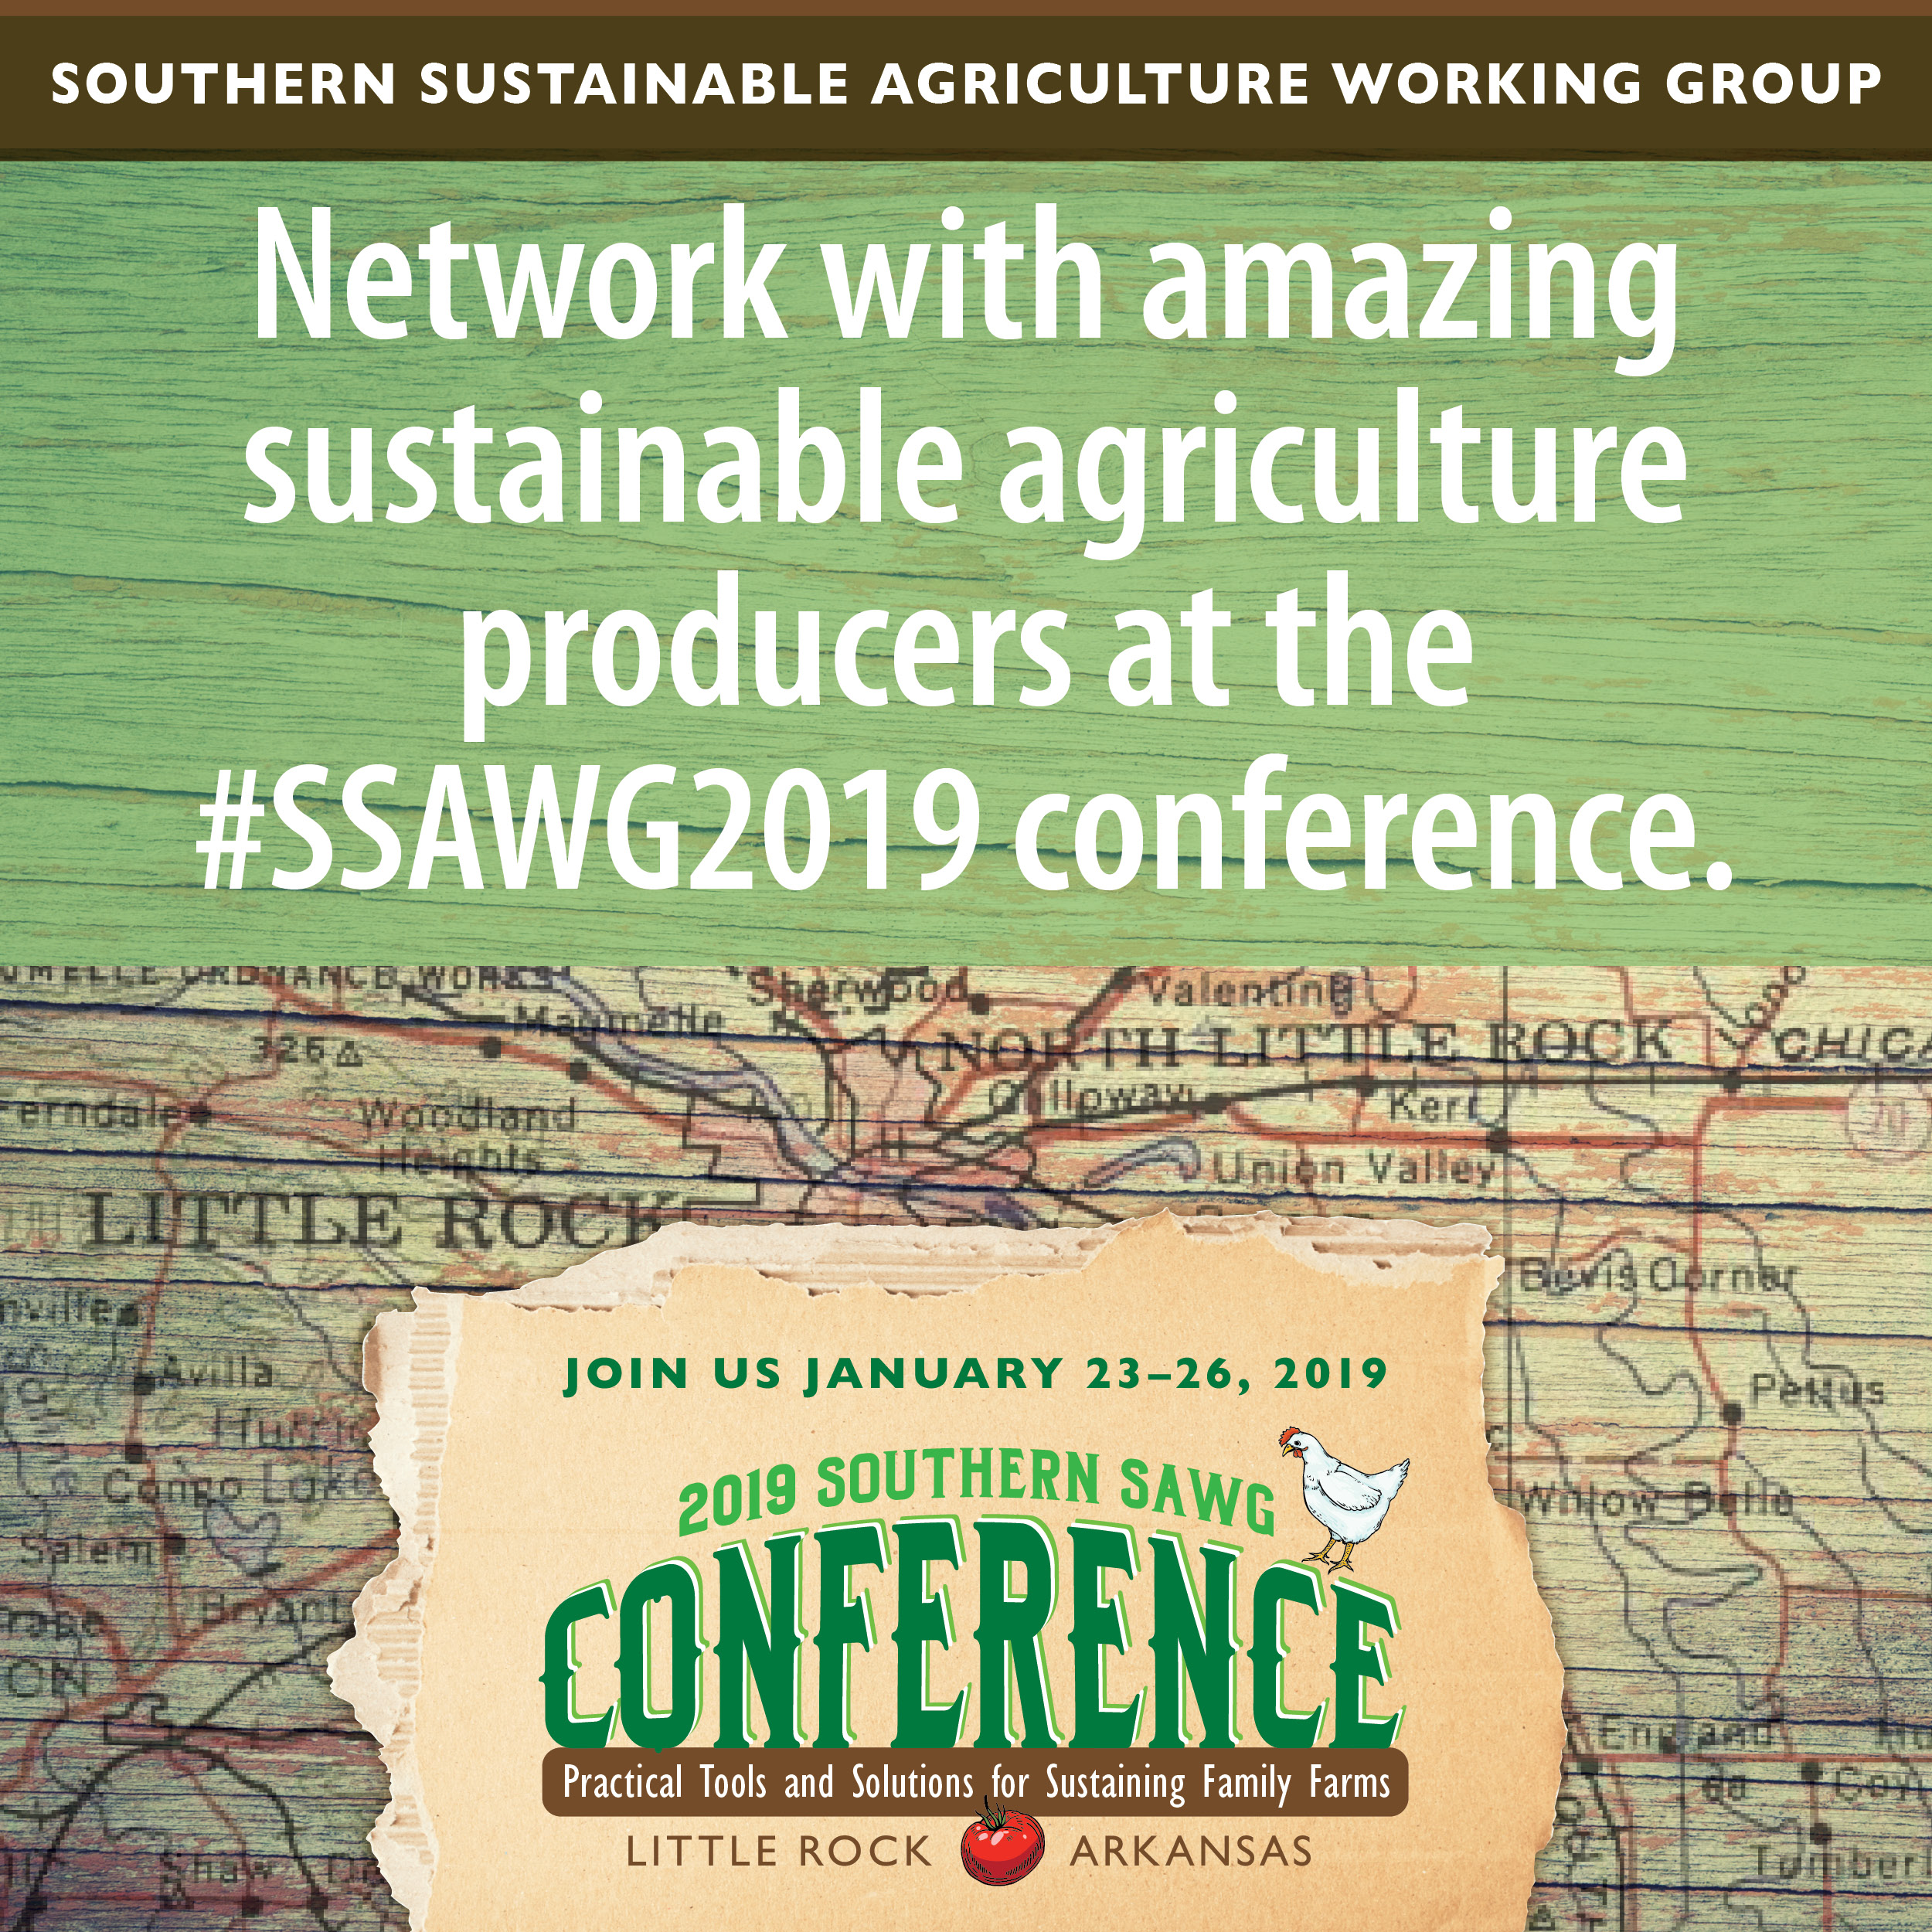 IG SSAWG 2019 Attending Conference 3.jpg